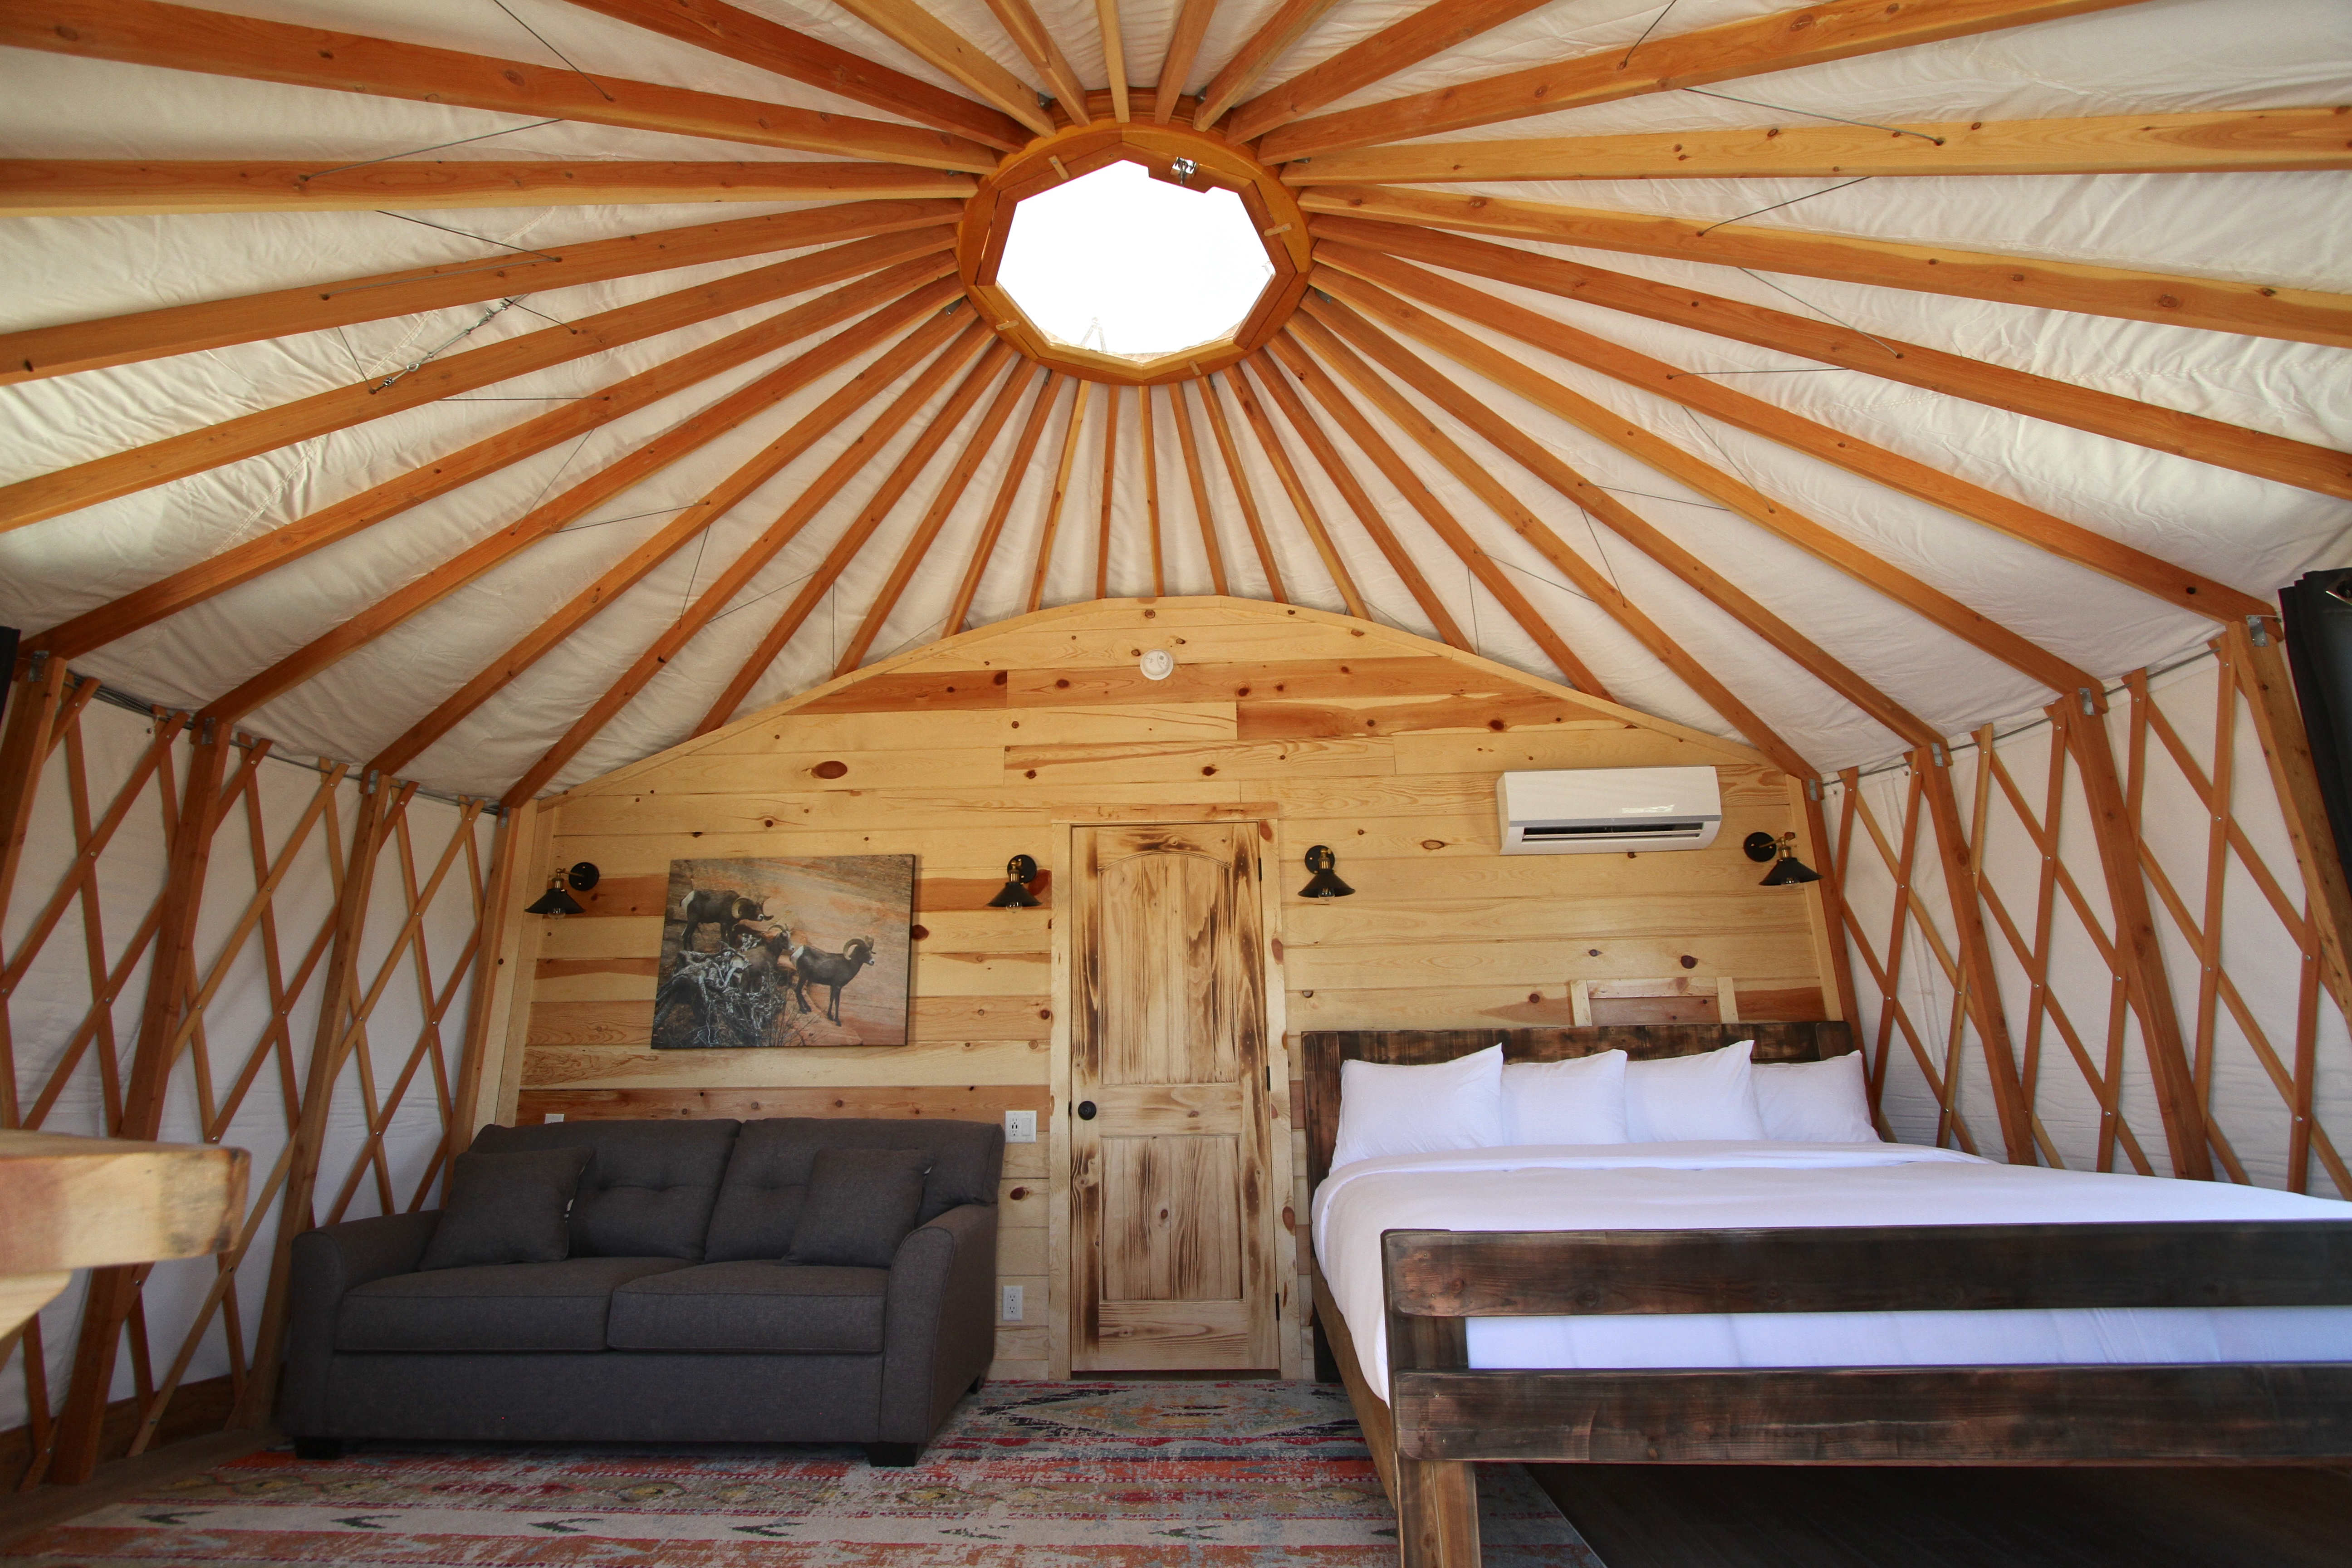 Yurt Bed and Sofa Front